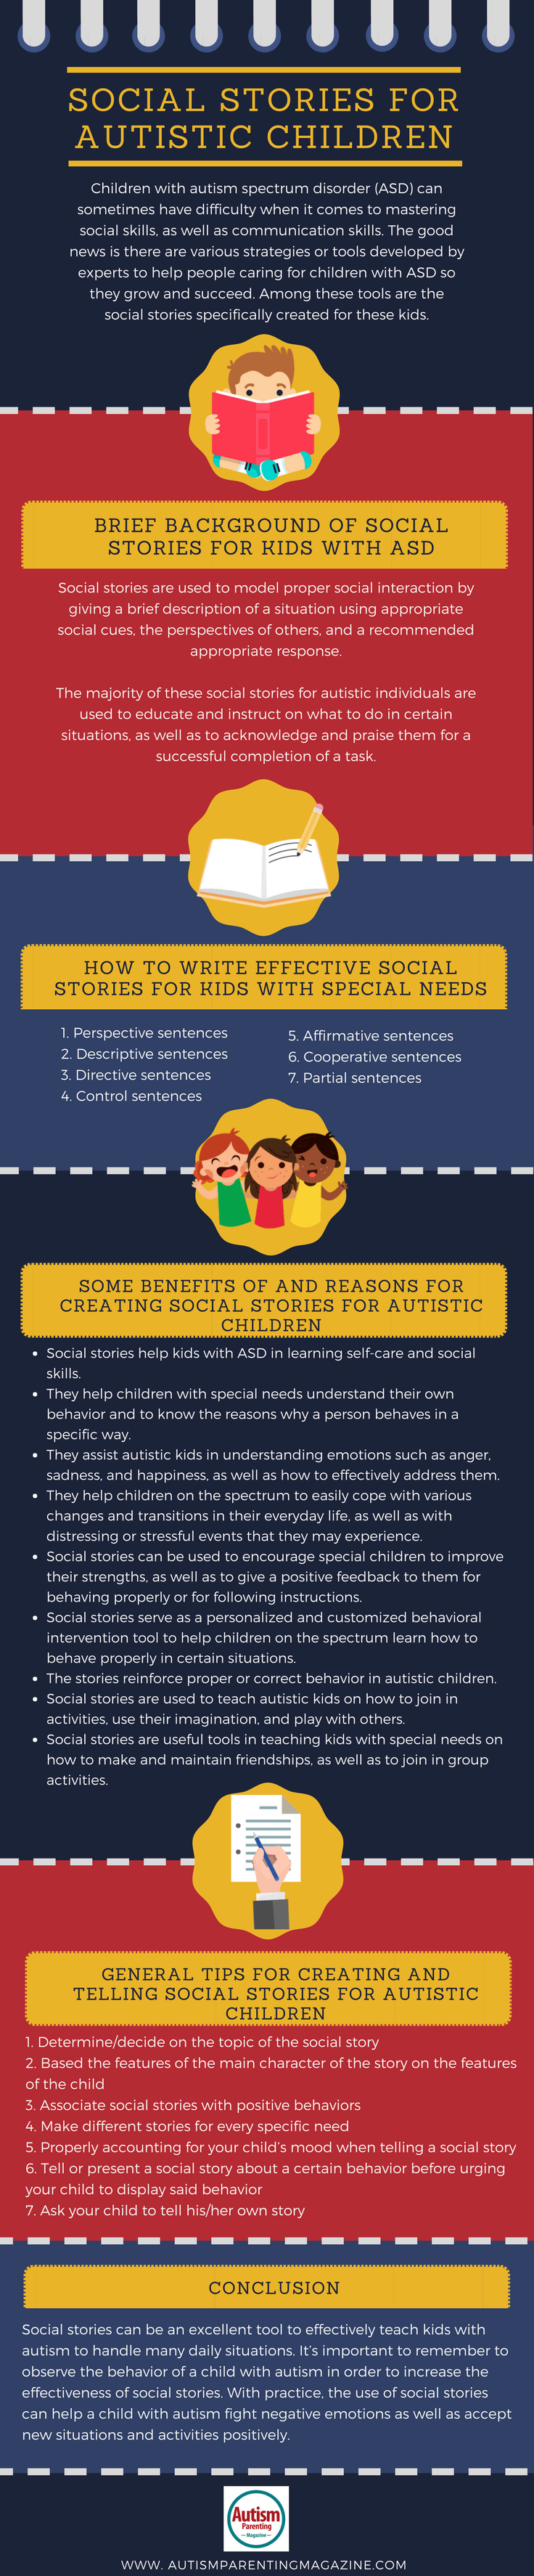 Social Stories for Autistic Children-infographic-galleryr